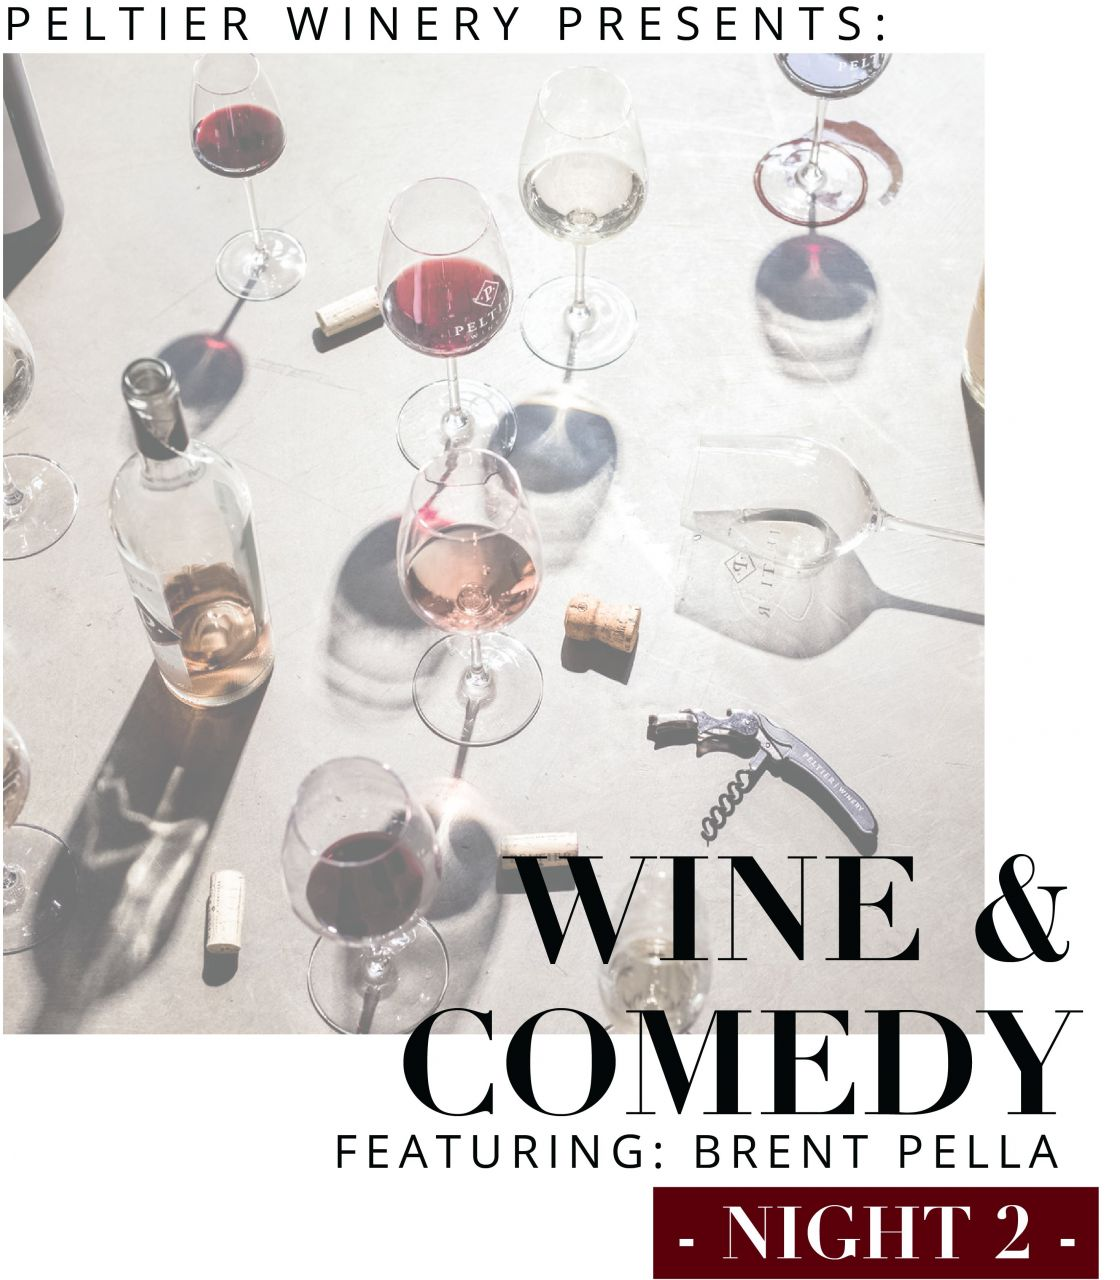 PELTIER WINERY PRESENTS NIGHT 2 OF WINE AND COMEDY FEATURING BRENT PELLA WINE GLASSES AND BOTTLES IN THE BACKGROUND